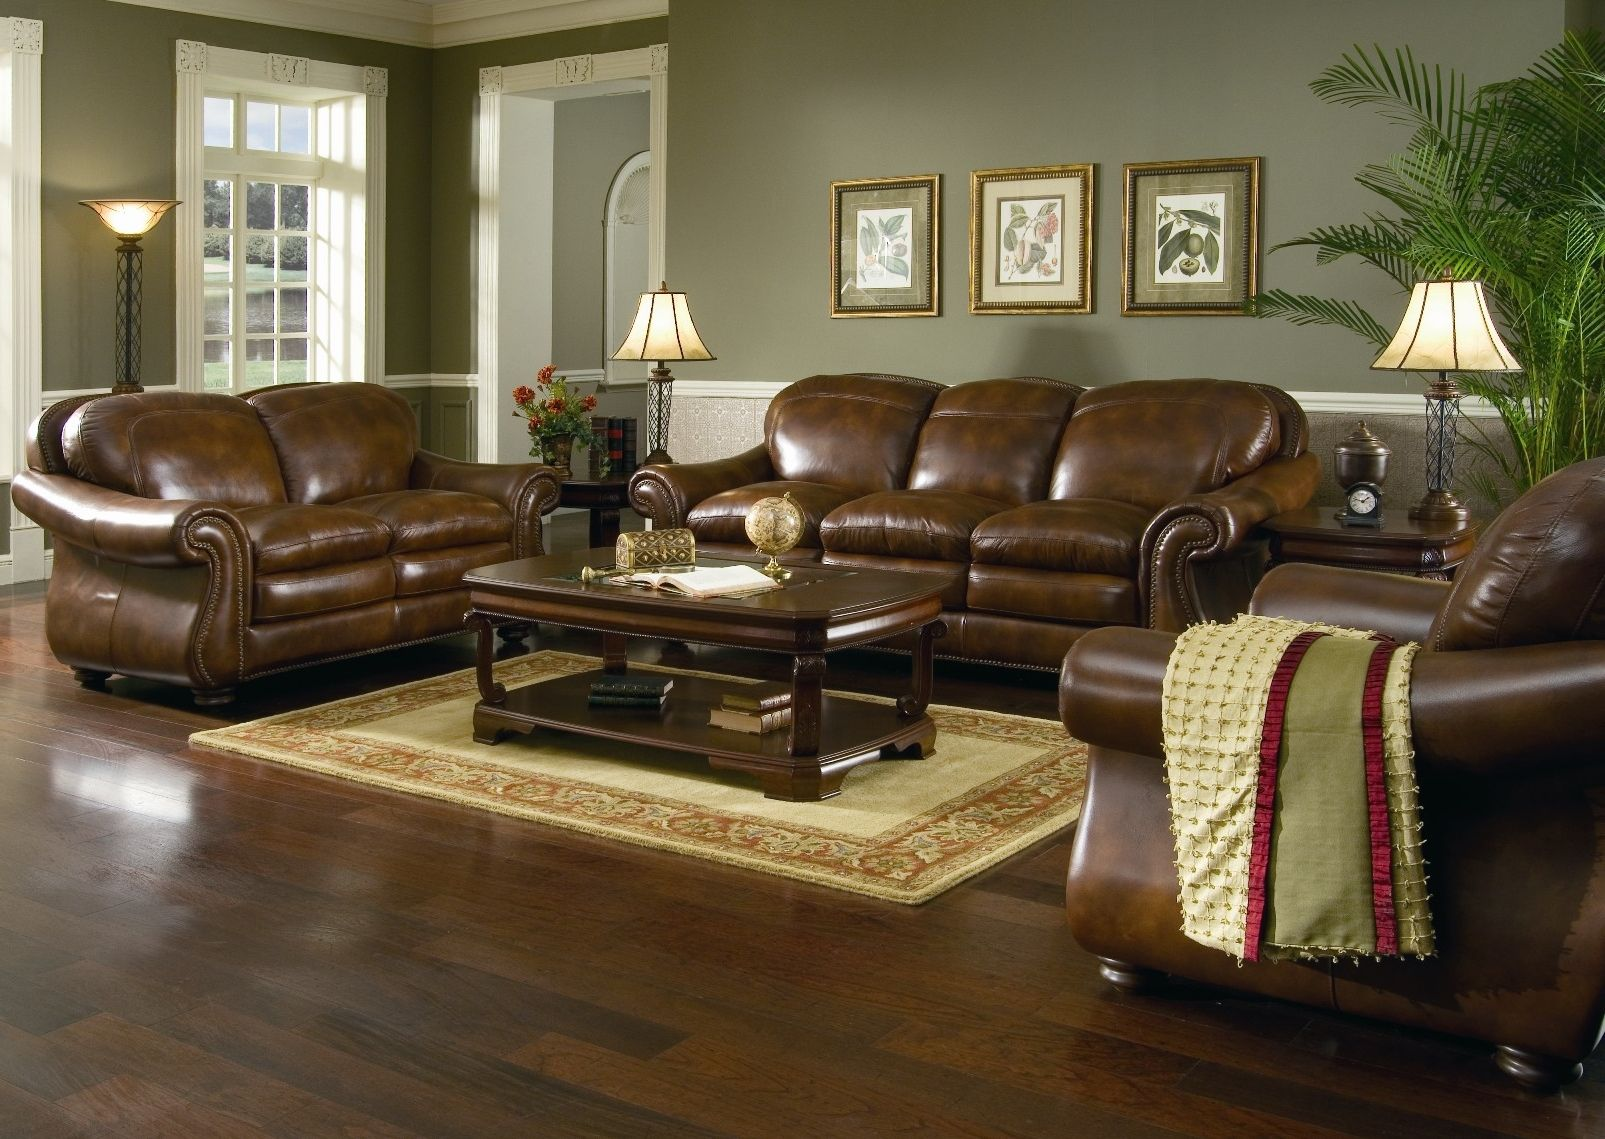 Living Couch Best 25 43 Brown Leather Sofa Bed Ideas On Pinterest Brown